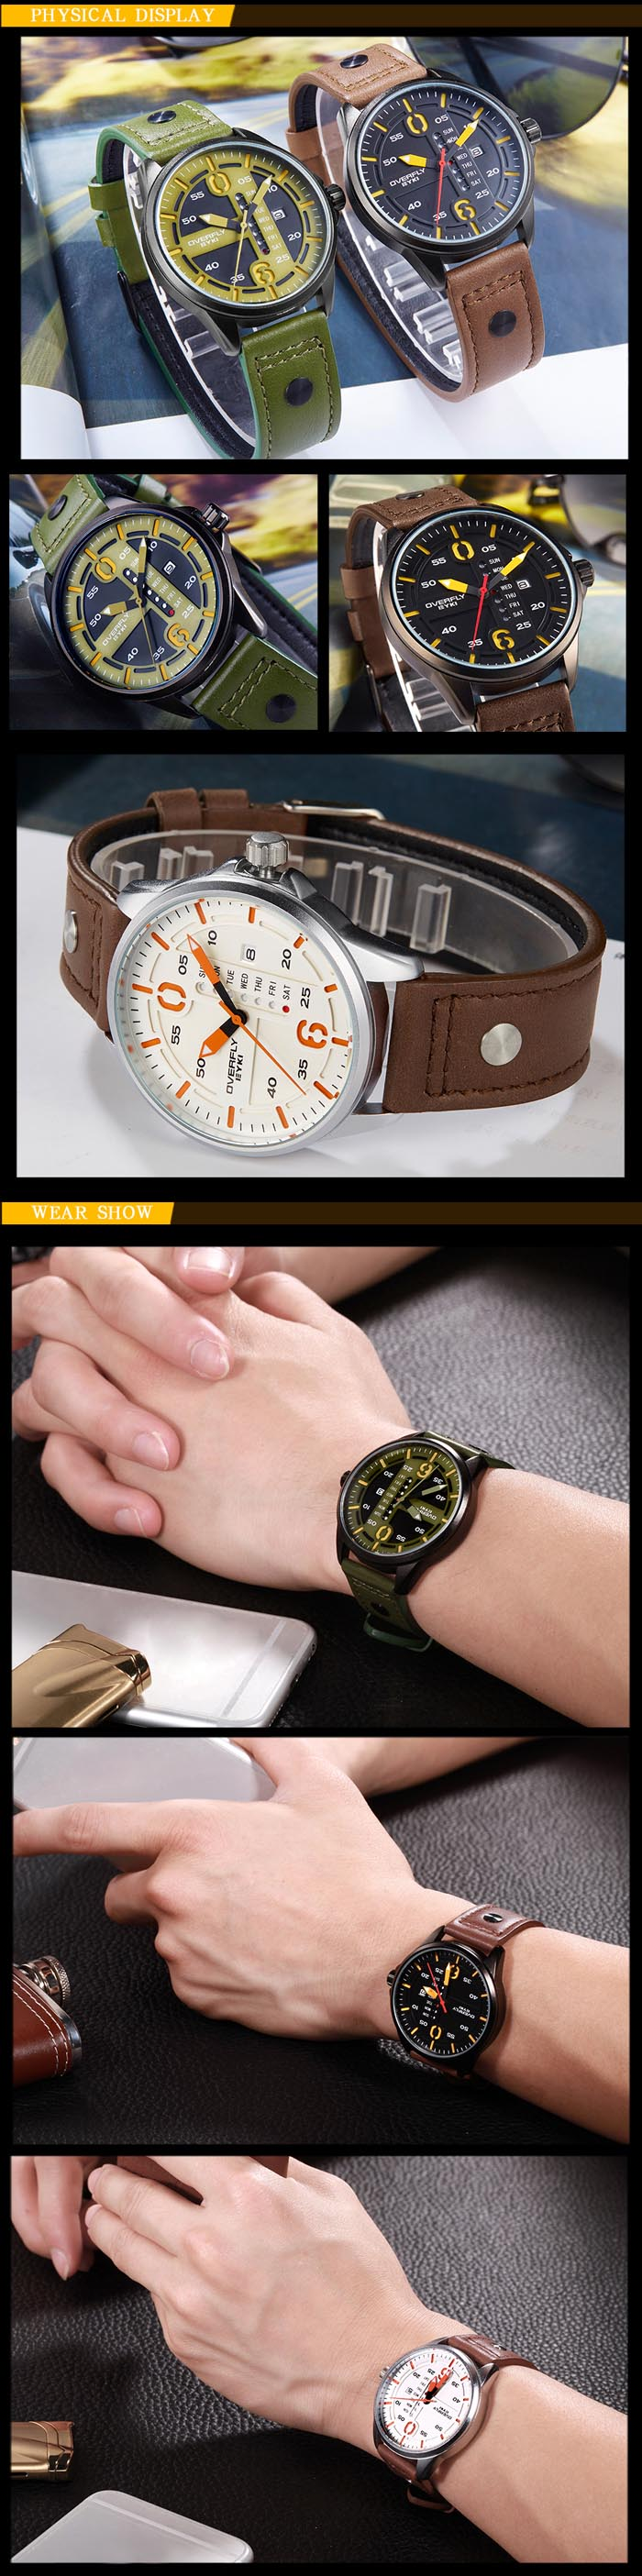 EYKI OVERFLY 3058 Casual Male Quartz Watch with Hollow-out Scale